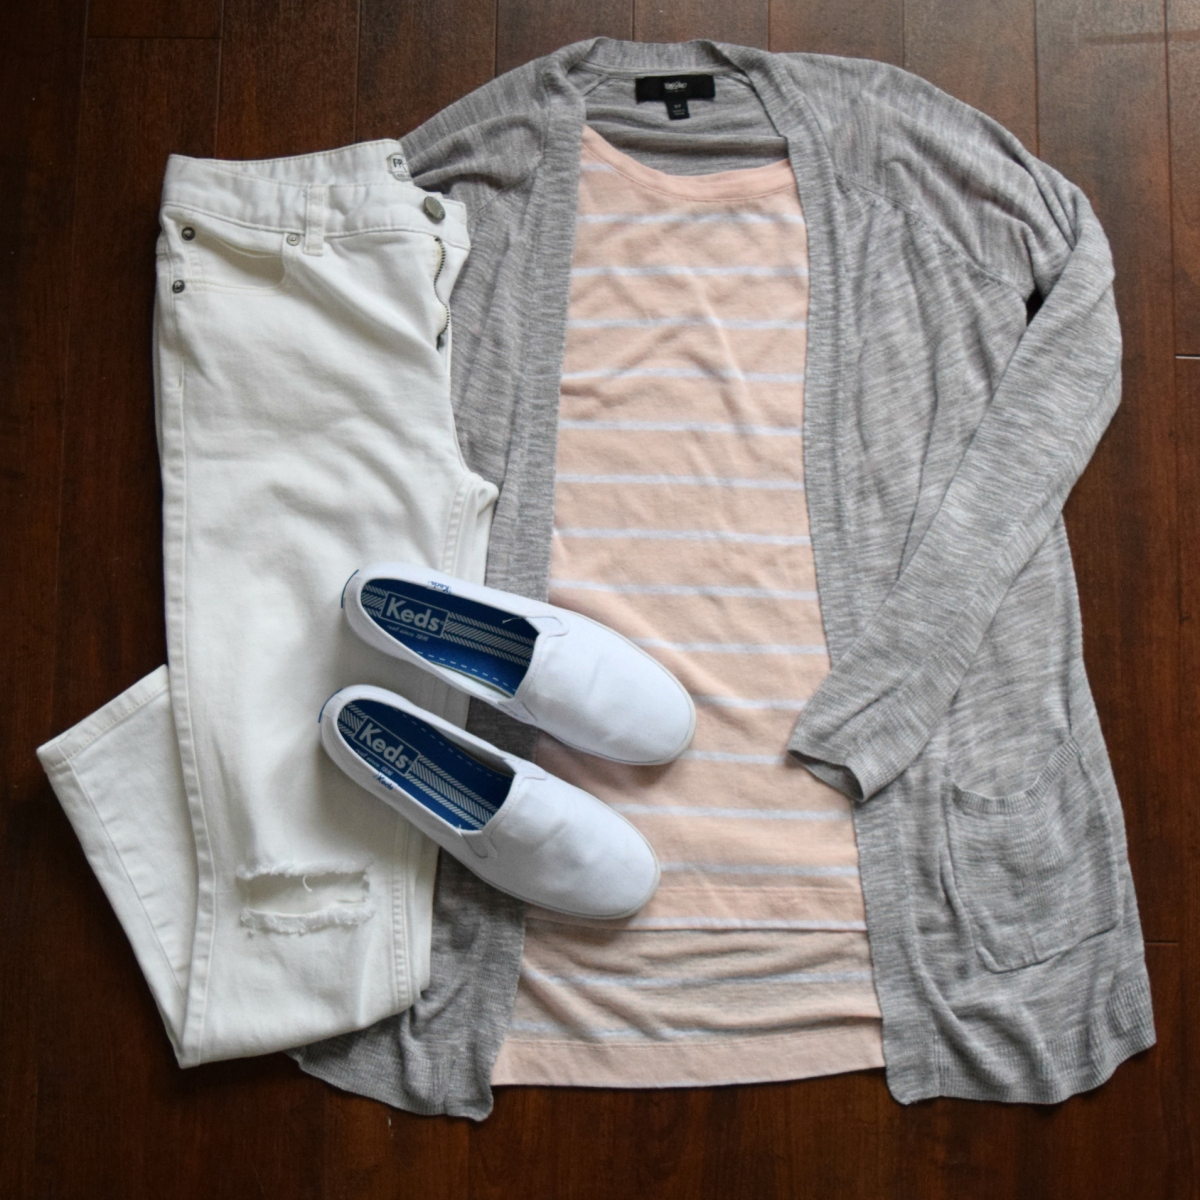 comfy and casual for the airport |www.pearlsandsportsbras.com|